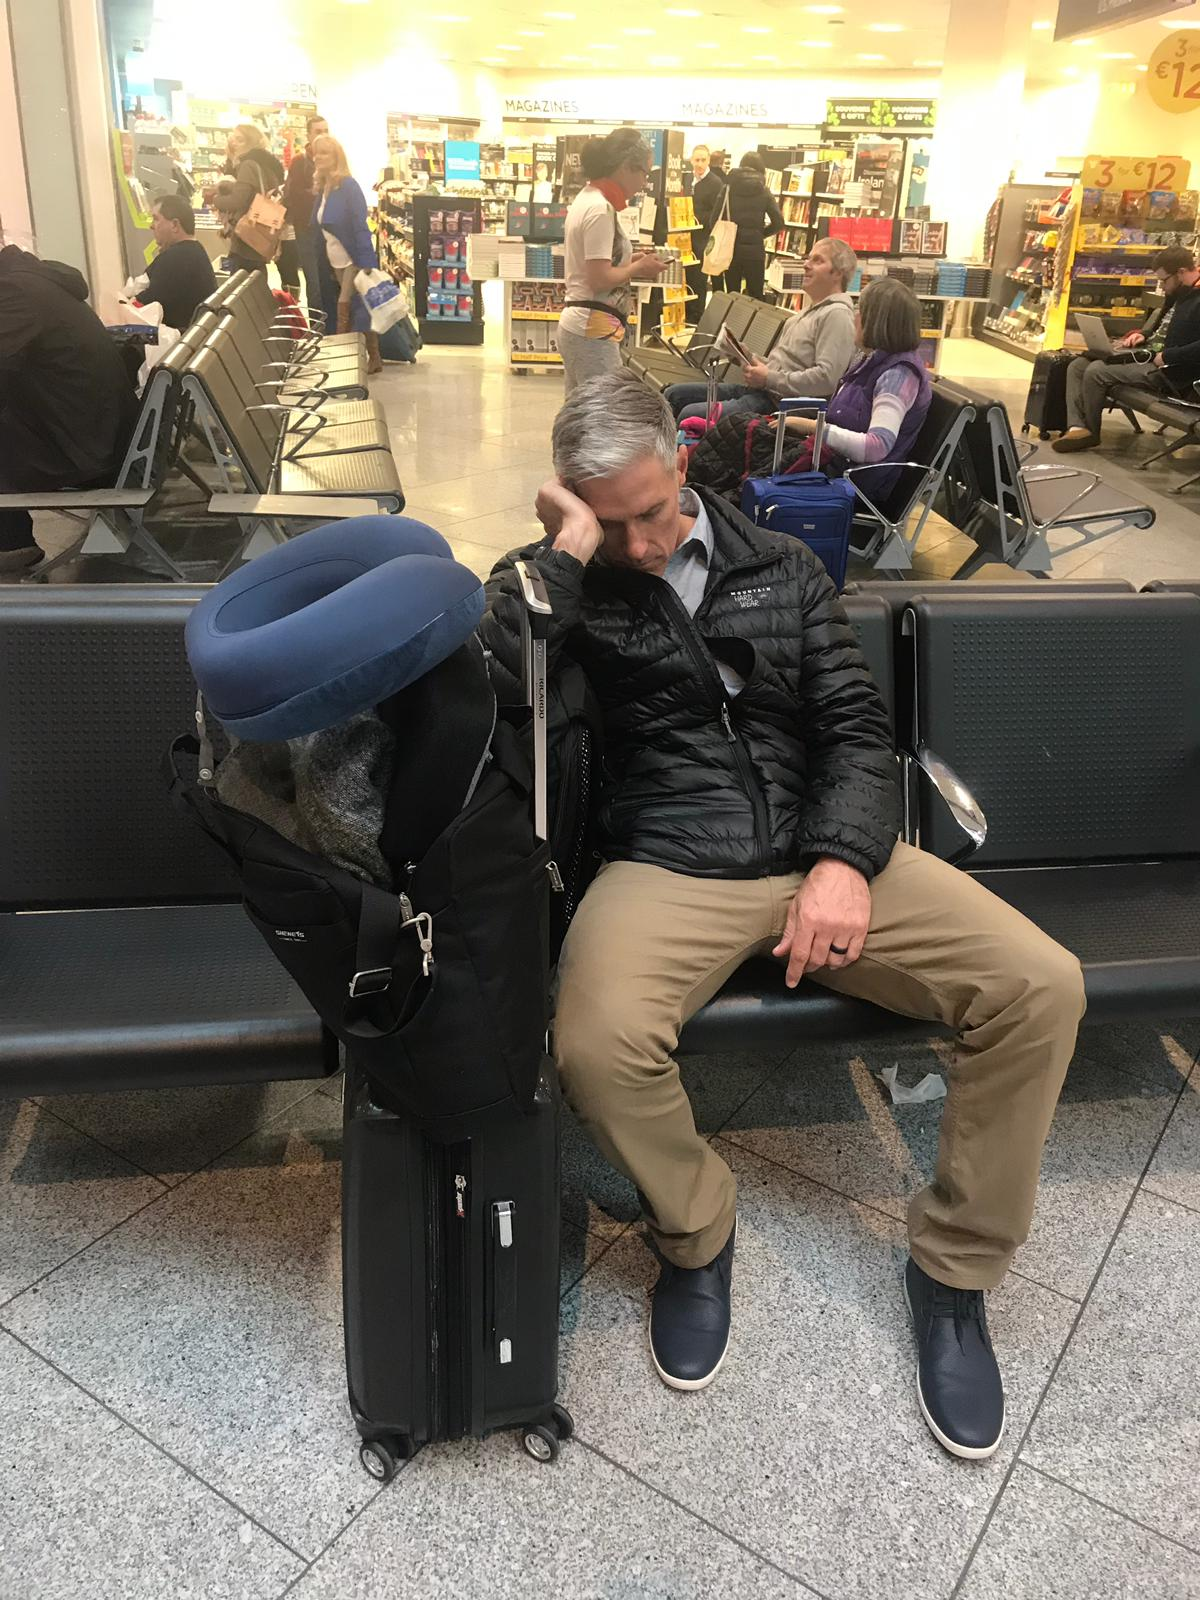 Mike taking a little snooze in the Dublin airport.